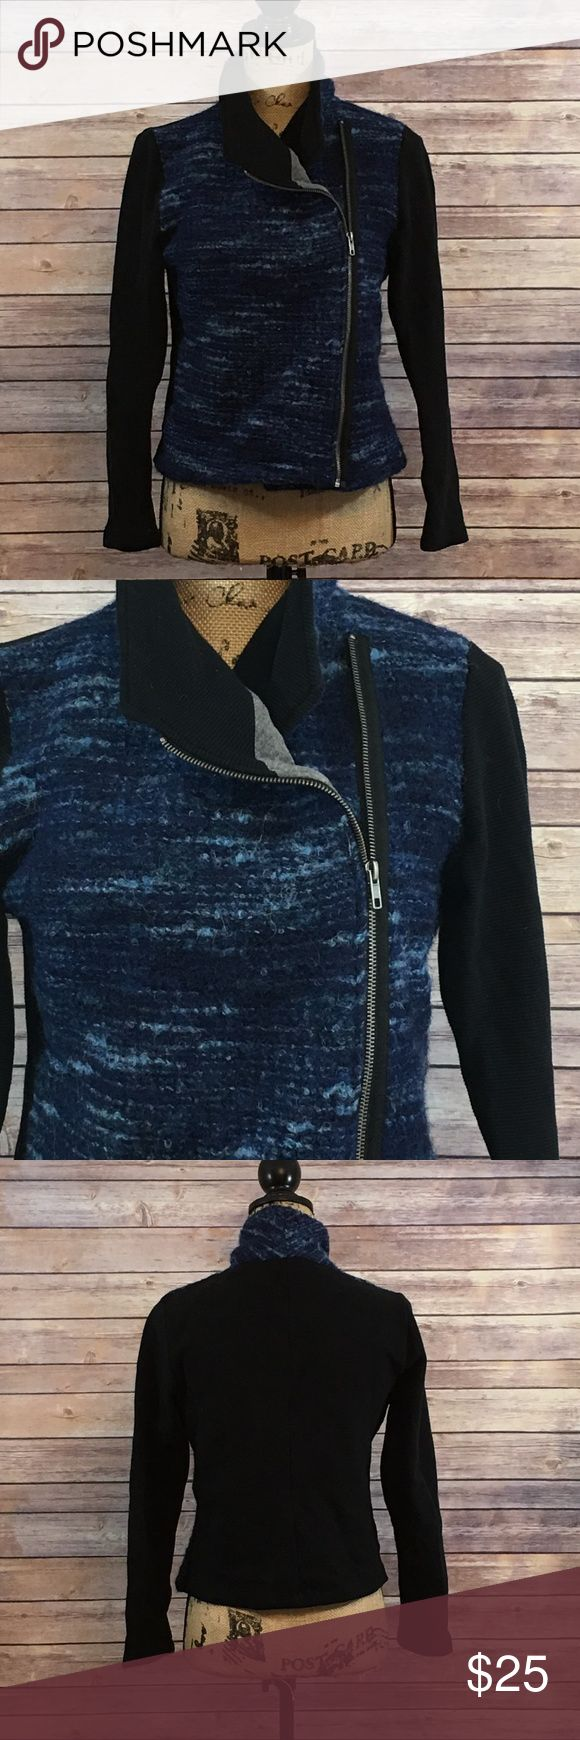 Dolan Left Coast Collection Jacket Anthropologie Size Large Dolan Left Coast Collection Jacket Blue and Black Blue area is virgin wool In excellent condition No signs of wear or fading Anthropologie Jackets & Coats